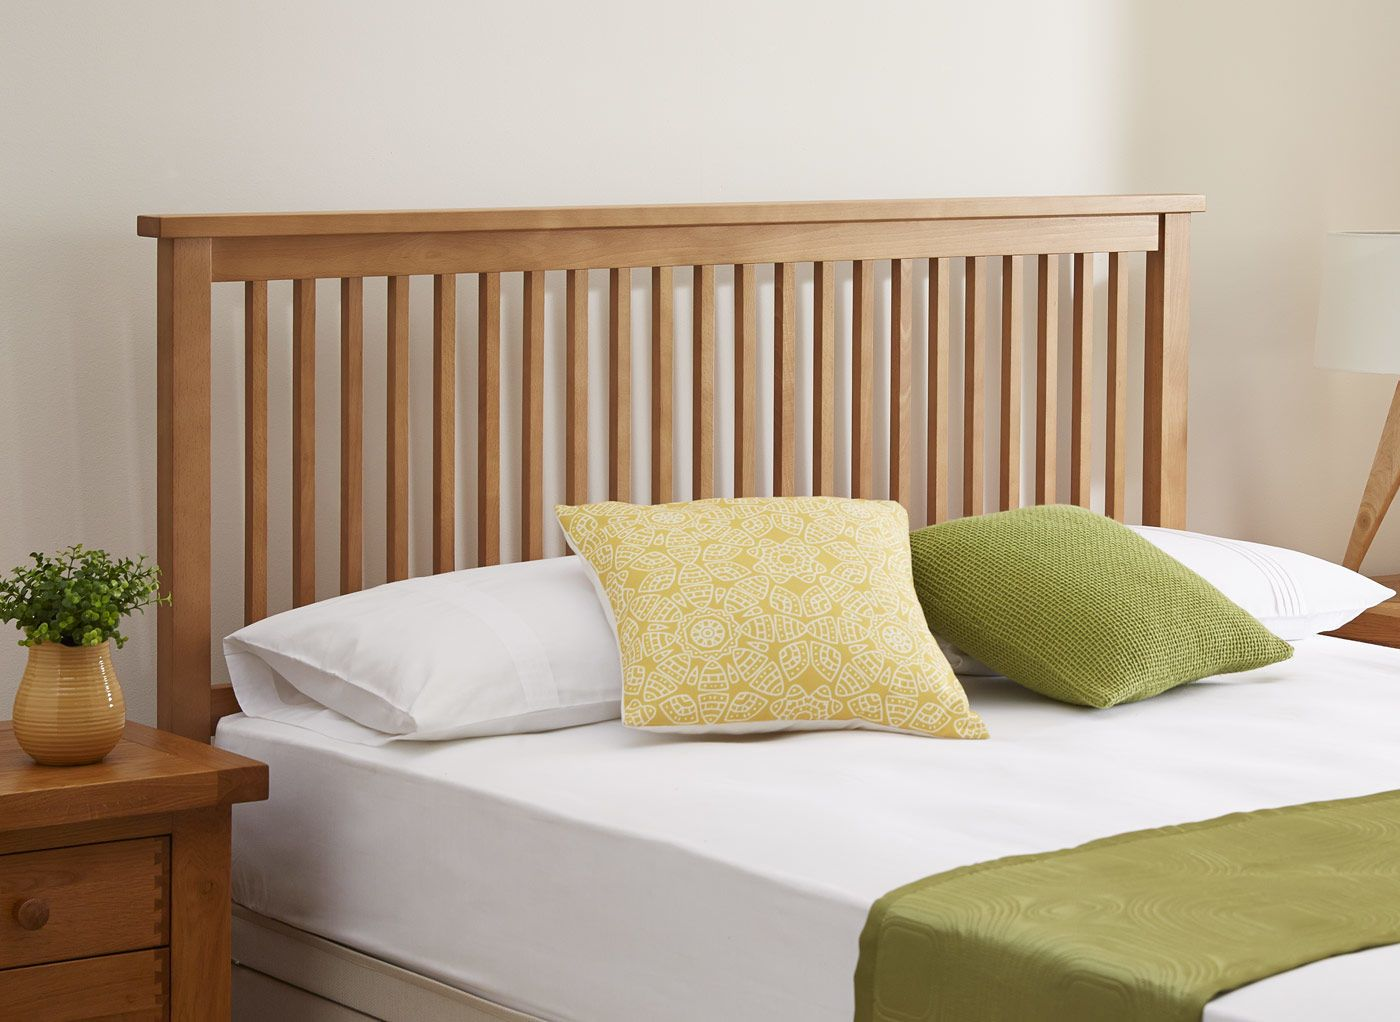 Charming Wooden Headboards Part - 12: Buy Stylish Headboards At Dreams. See Our Range Of Quality Metal,  Upholstered And Wooden Headboards At Fantastic Prices - All With Free  Delivery!